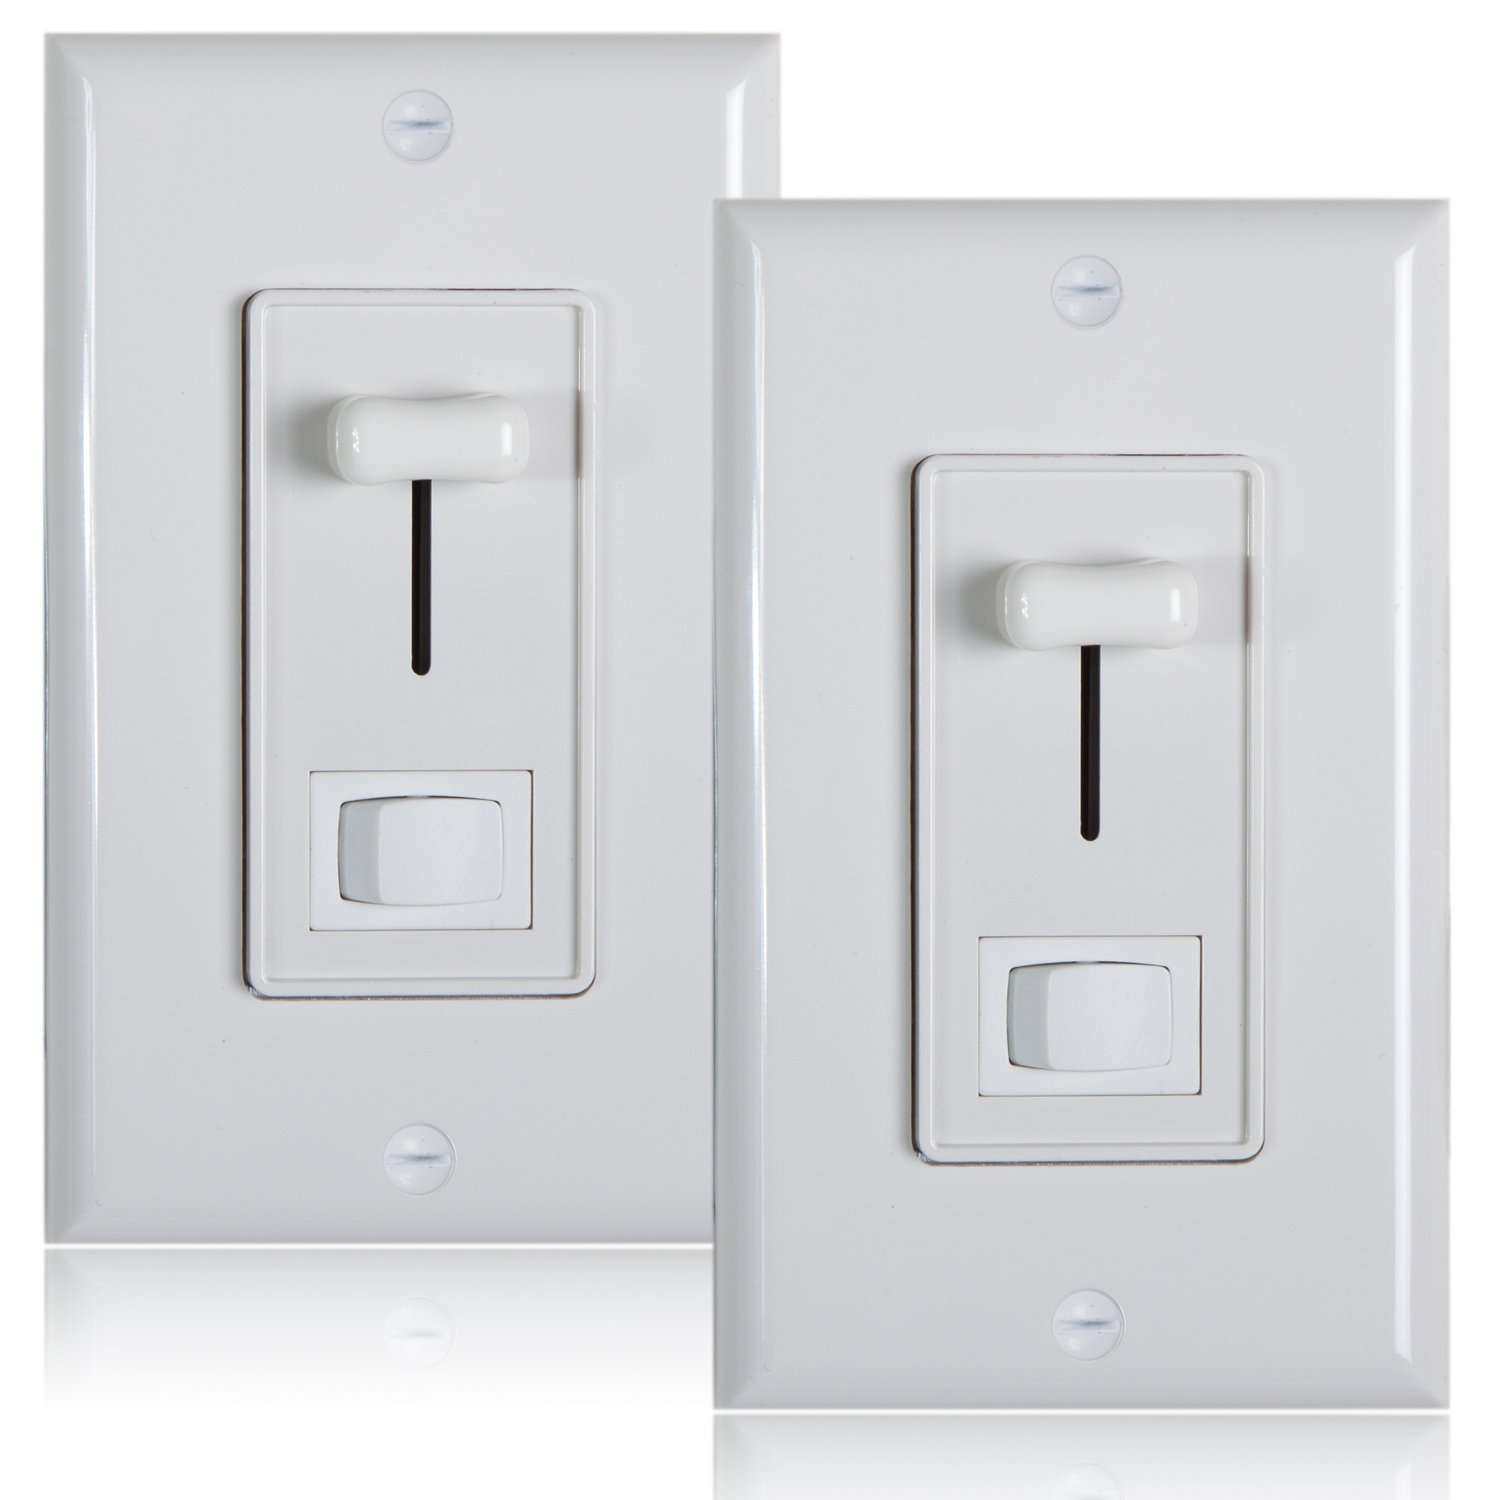 Maxxima 3-Way / Single Pole Dimmer Electrical light Switch 600 Watt max, LED Compatible, Wall Plate Included (2 Pack)